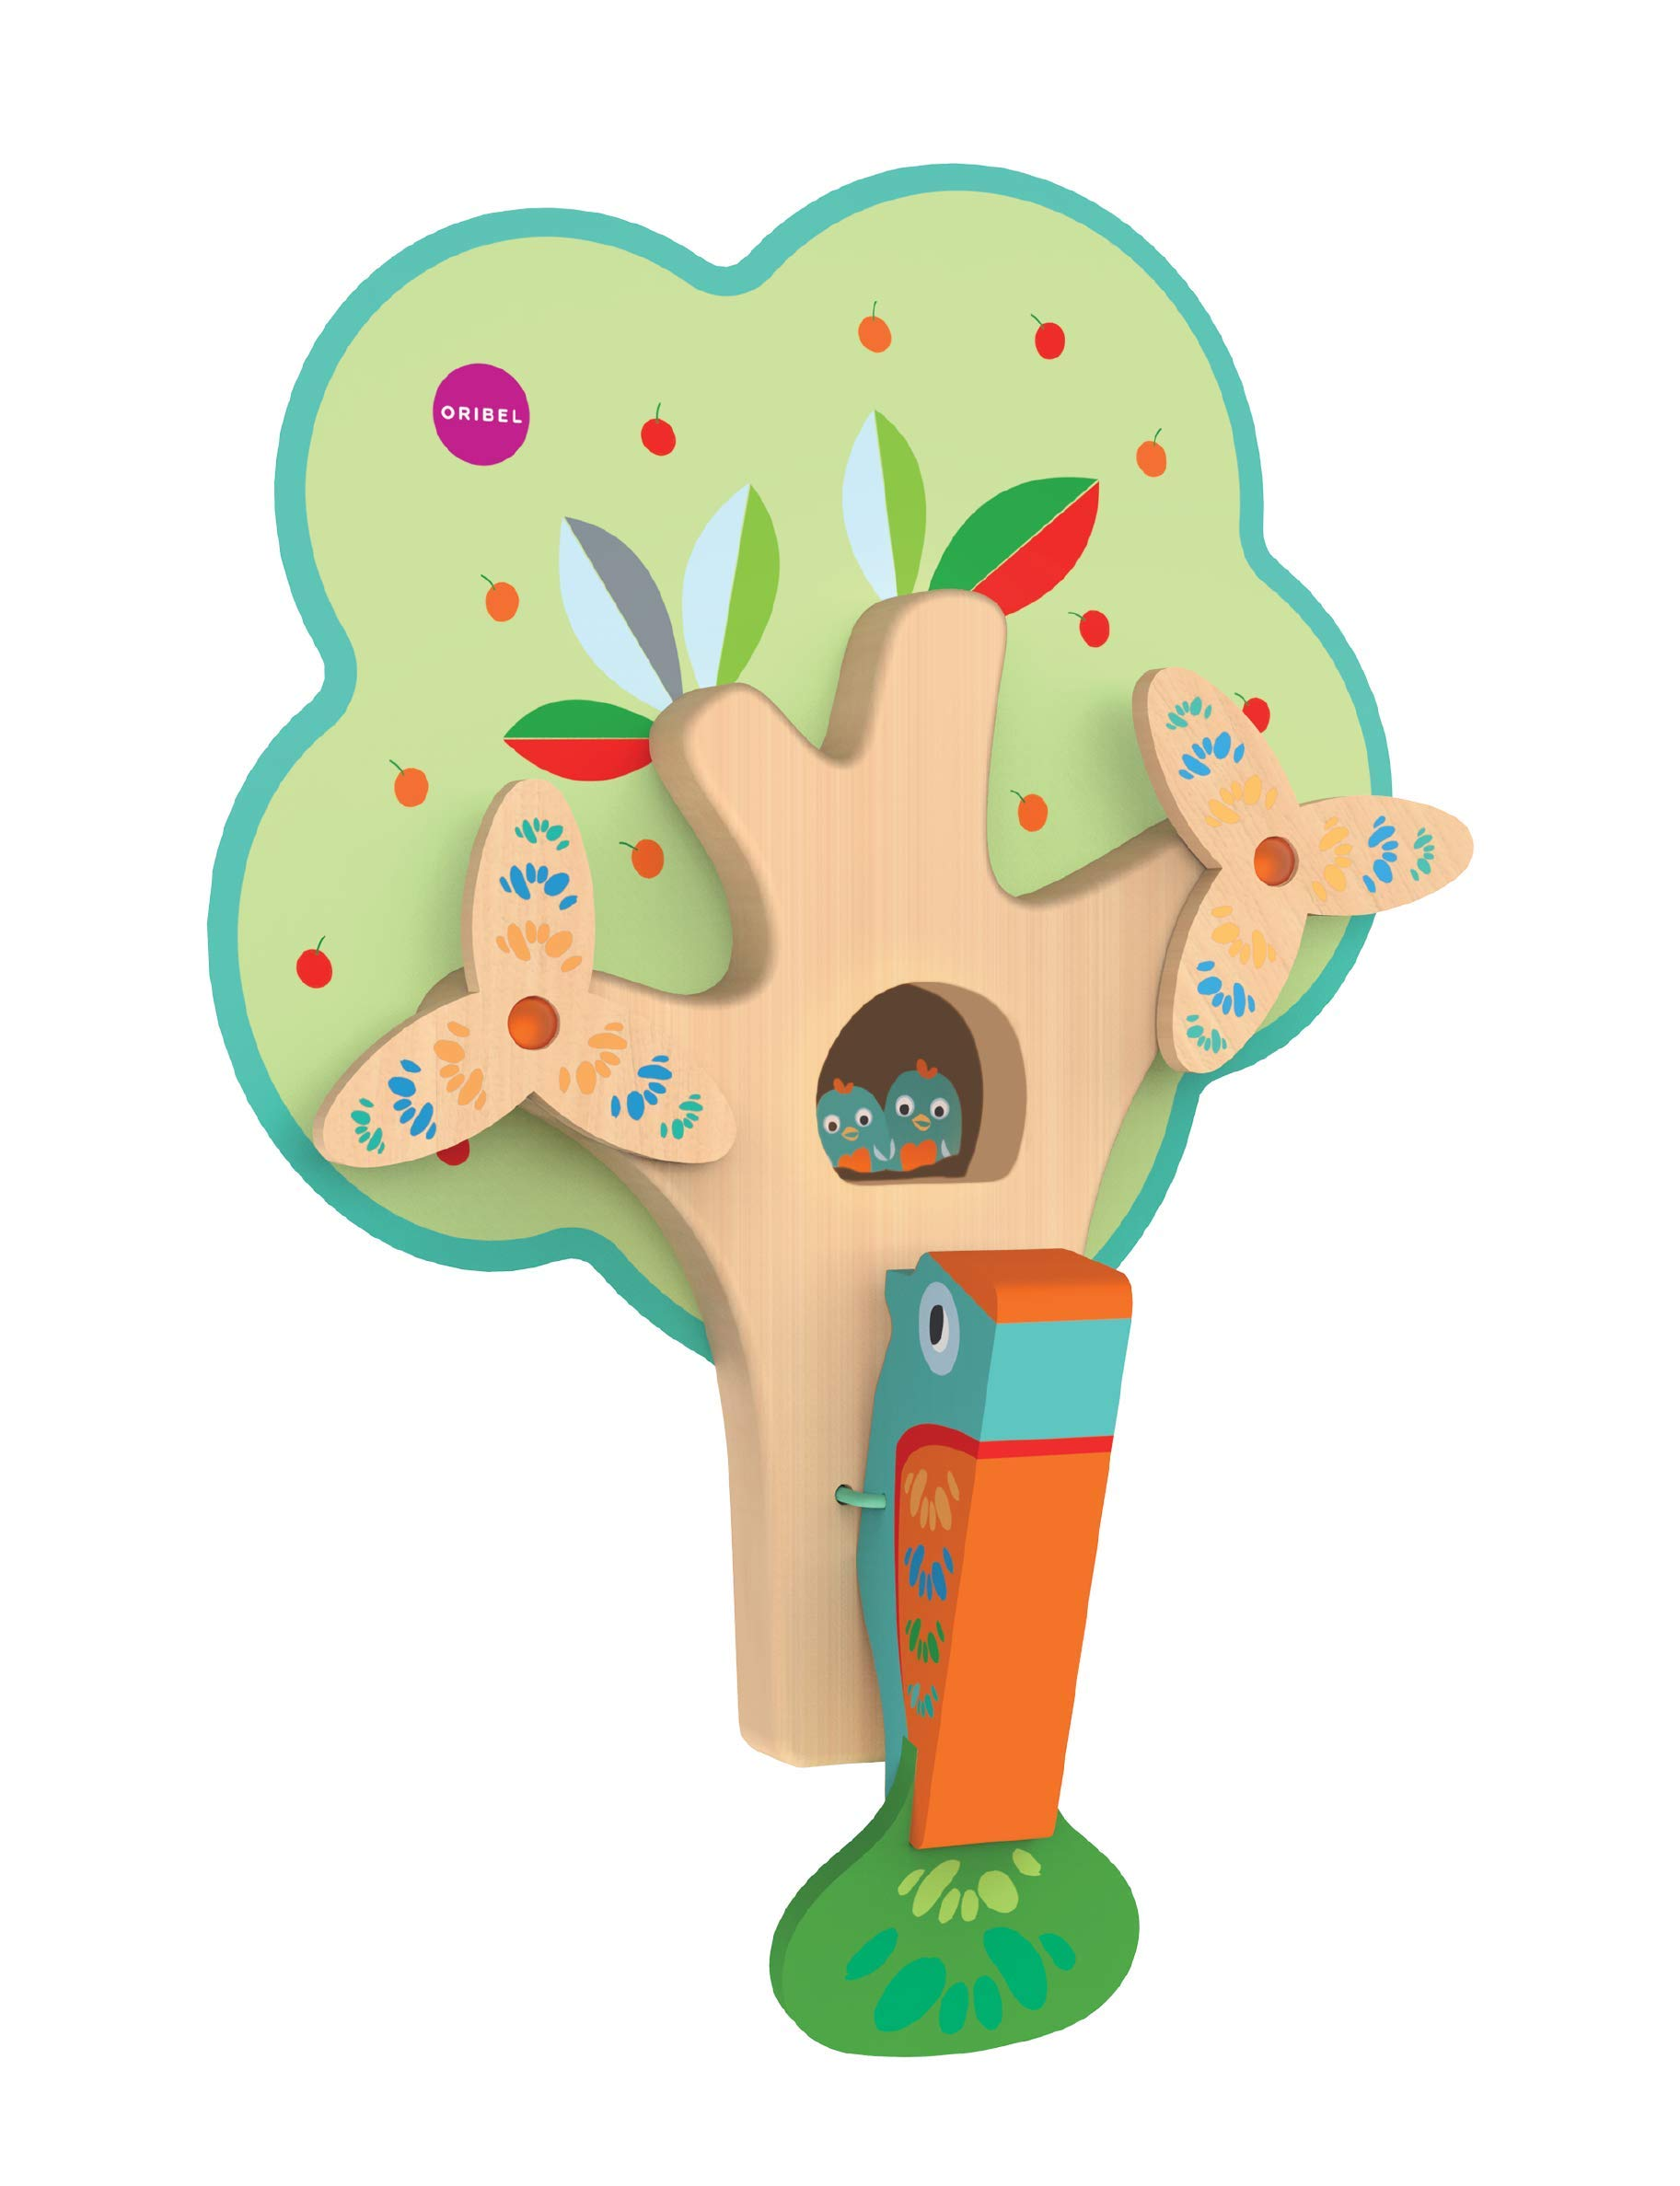 ORIBEL VertiPlay (Wall Toy) Busy Woodpecker, Wooden Toy and Nursery Room Decor | Easy to Install, Just Stick & Play